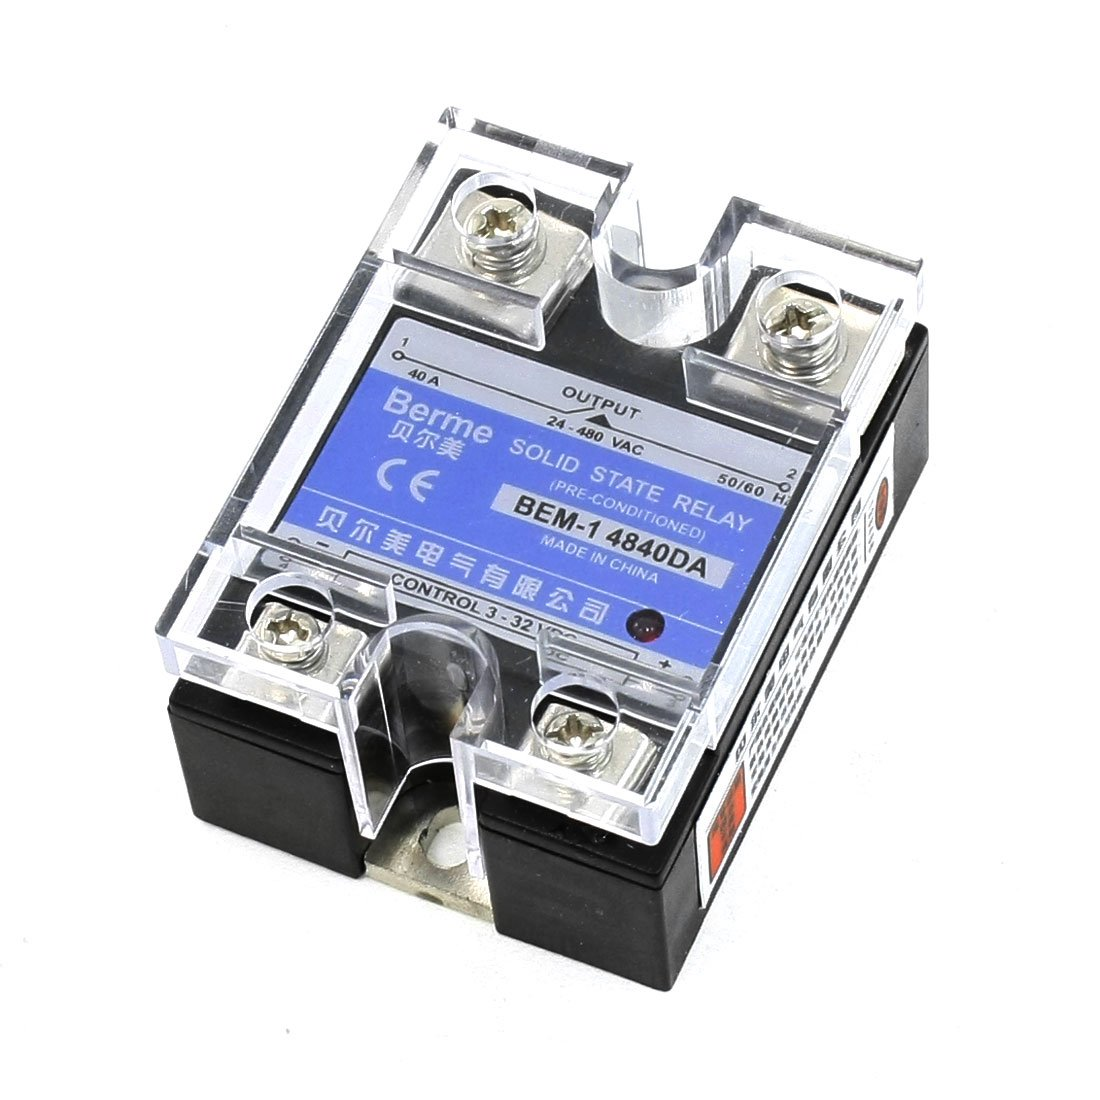 IMC Hot 24-480V AC DC to 3-32VDC Output Single Phase SSR Solid State Relay 40AIMC Hot 24-480V AC DC to 3-32VDC Output Single Phase SSR Solid State Relay 40A